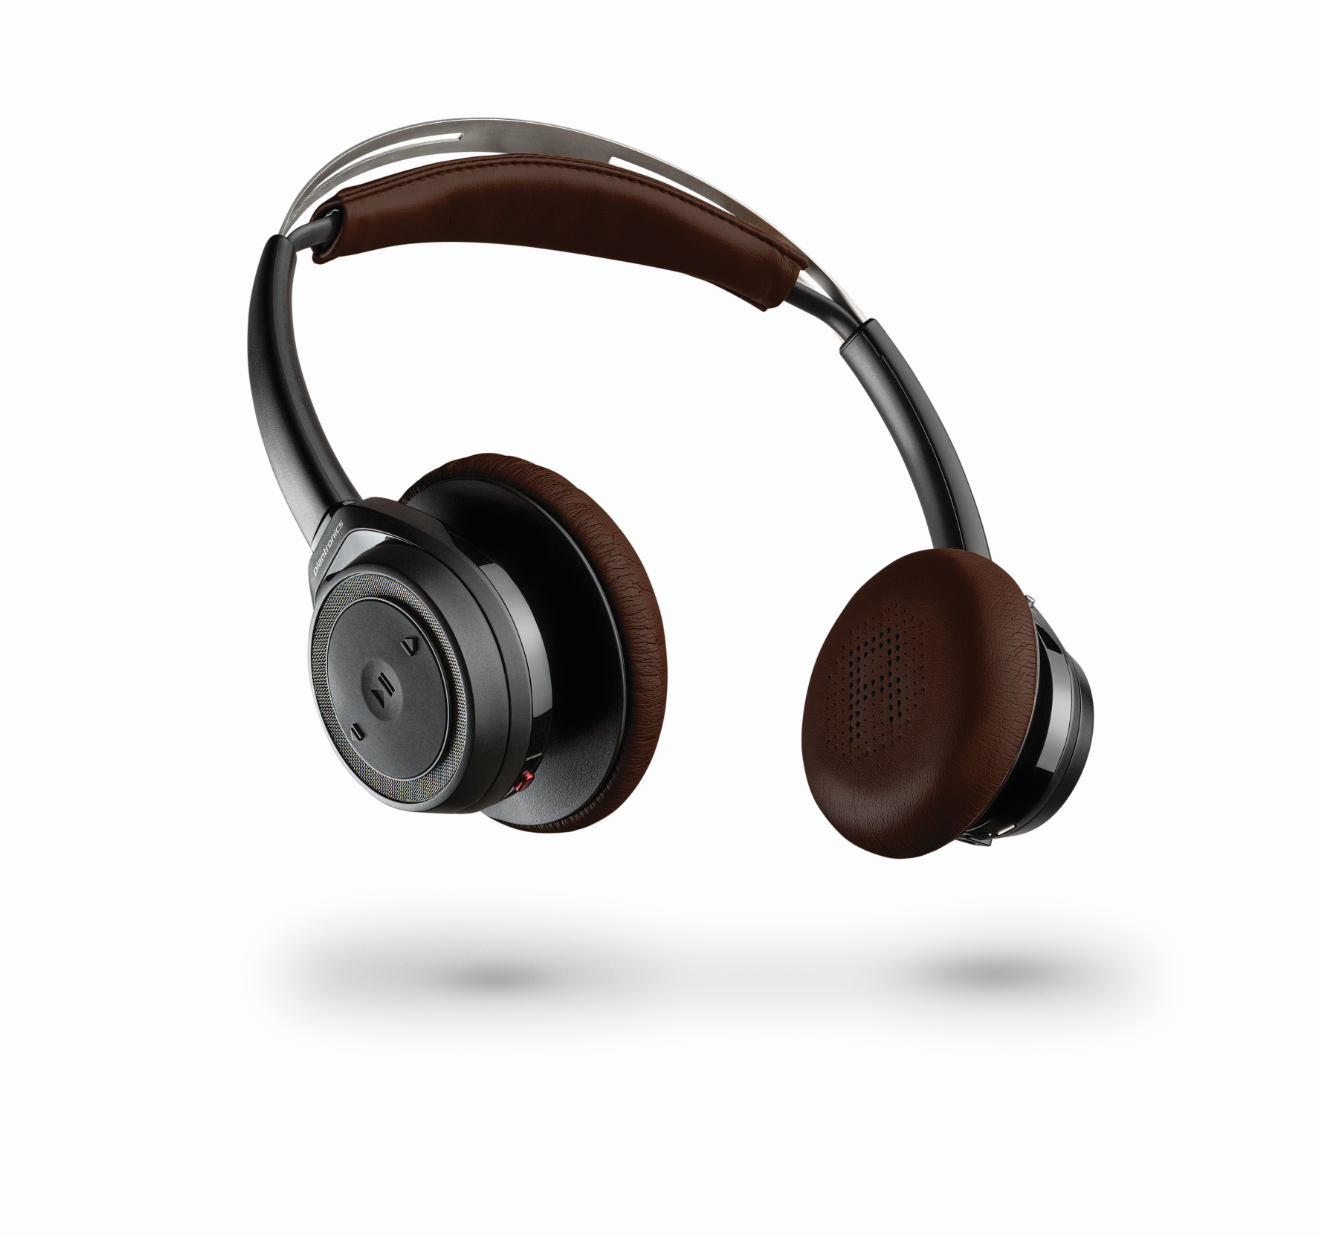 RFMag Holiday Gift Guide 2015: Plantronics BackBeat SENSE